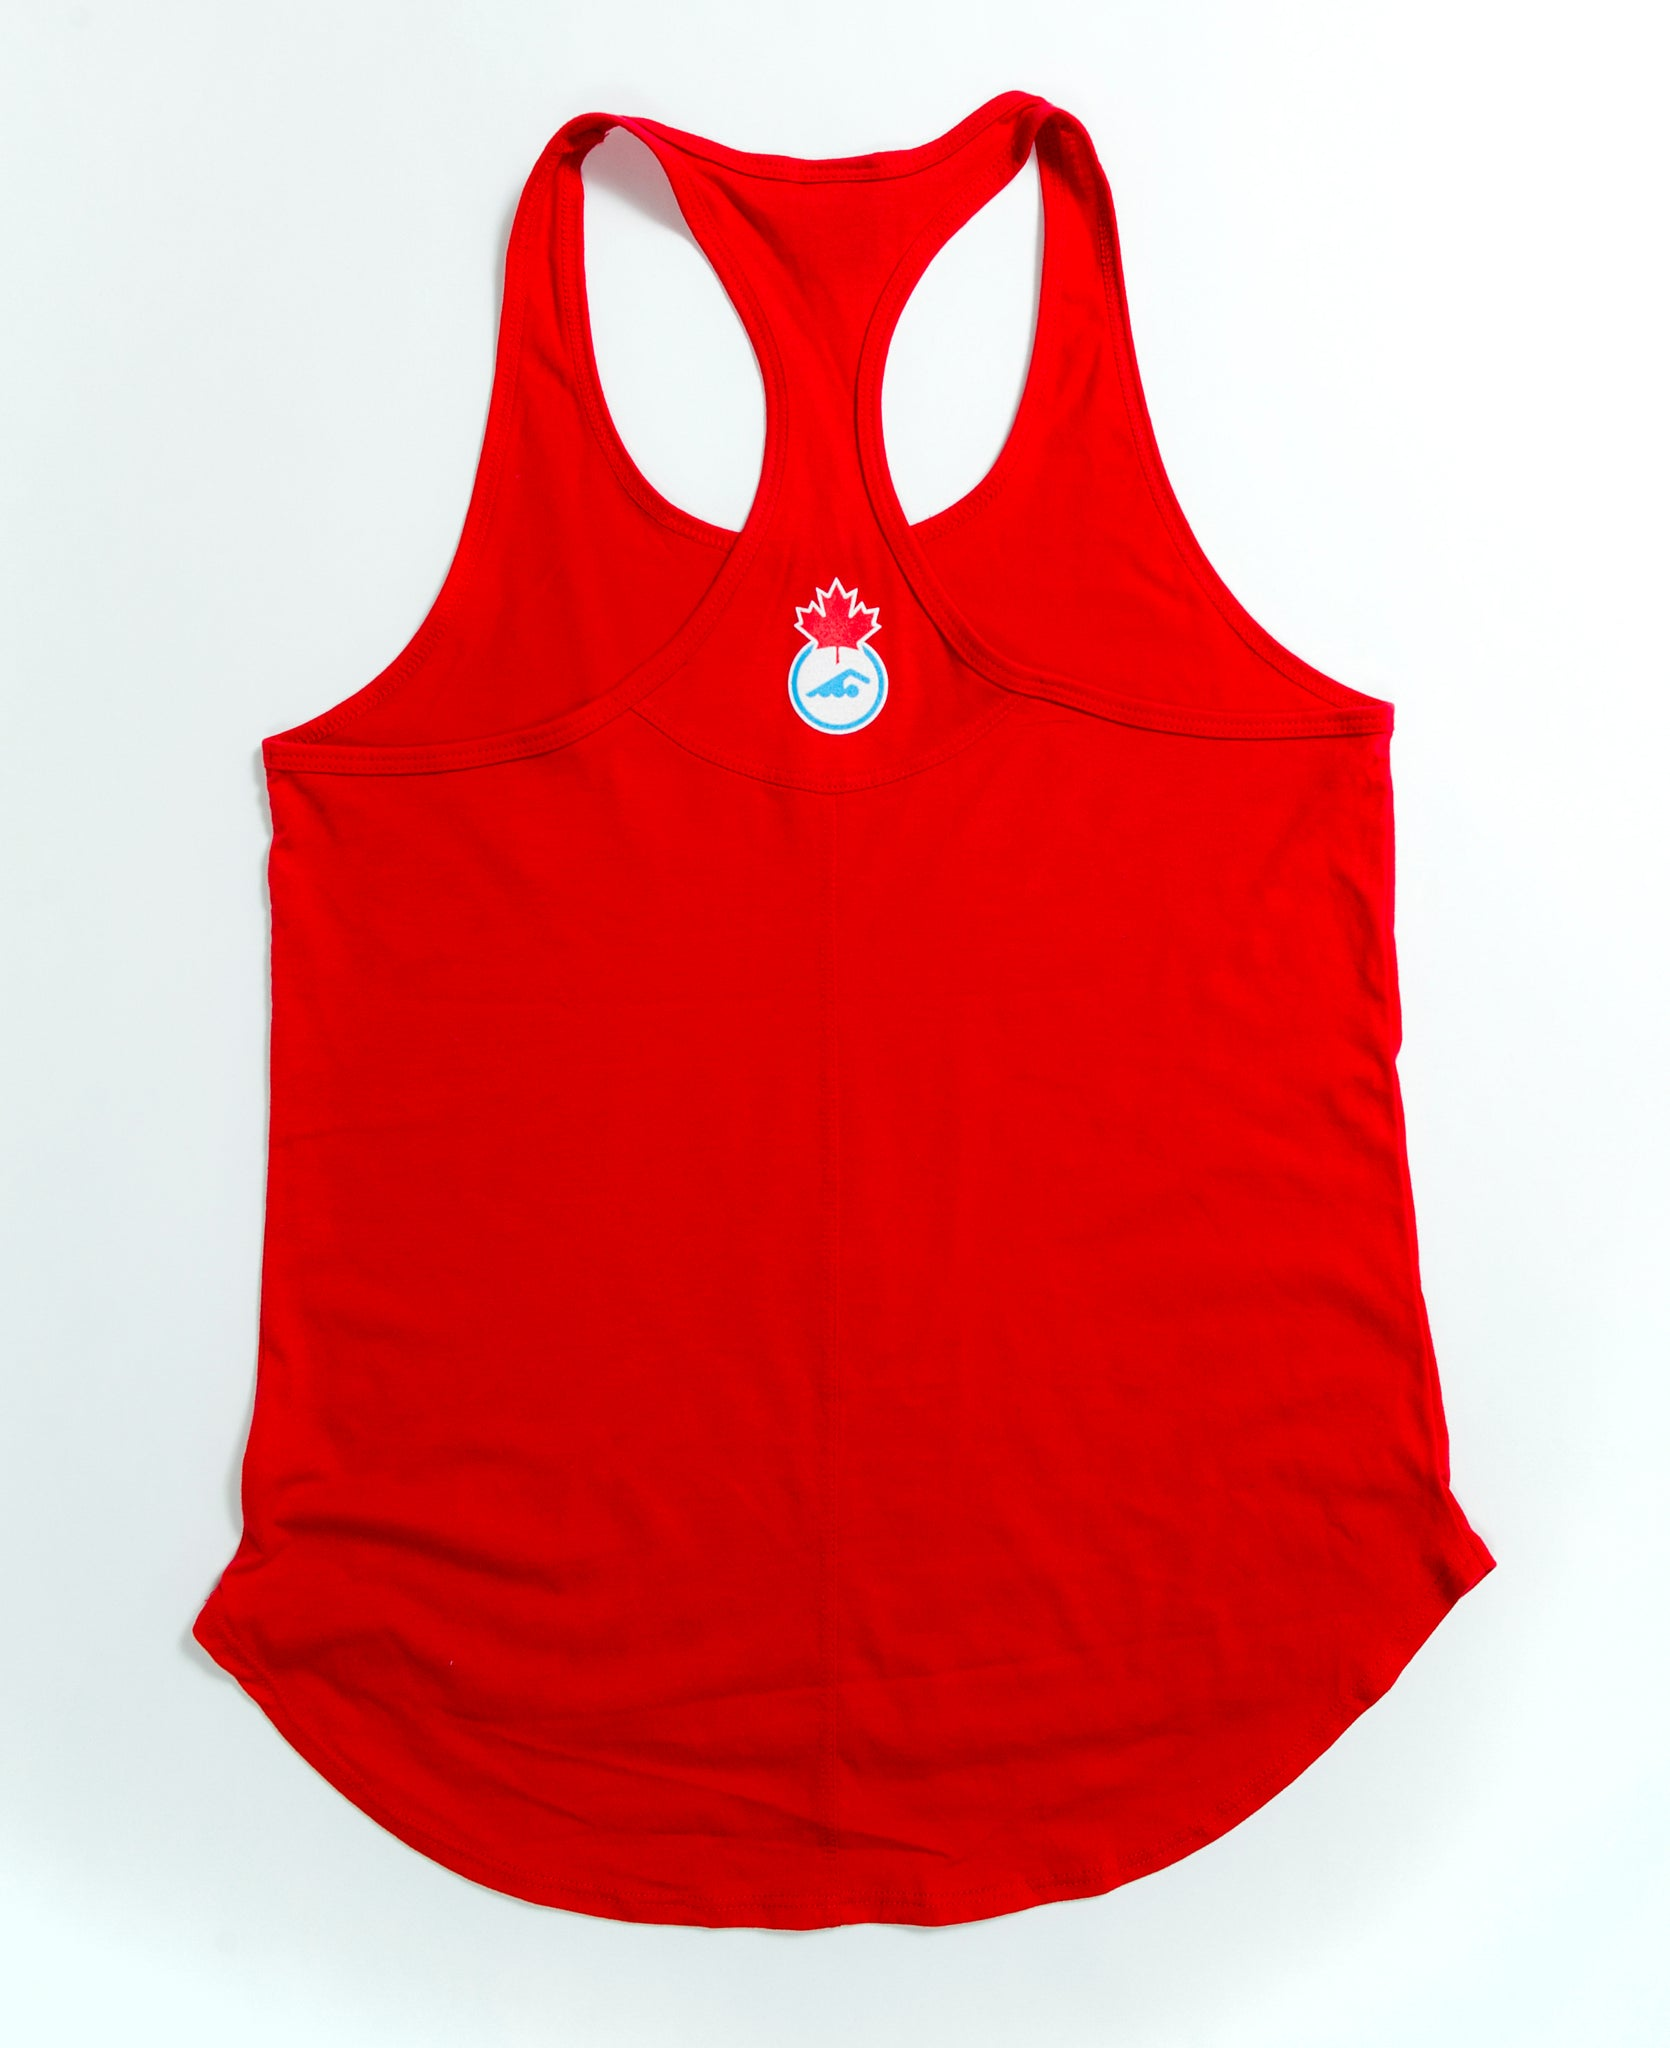 d3402f2fc4eeb Women's Team Canada Red Tank Top – Swim Canada Store